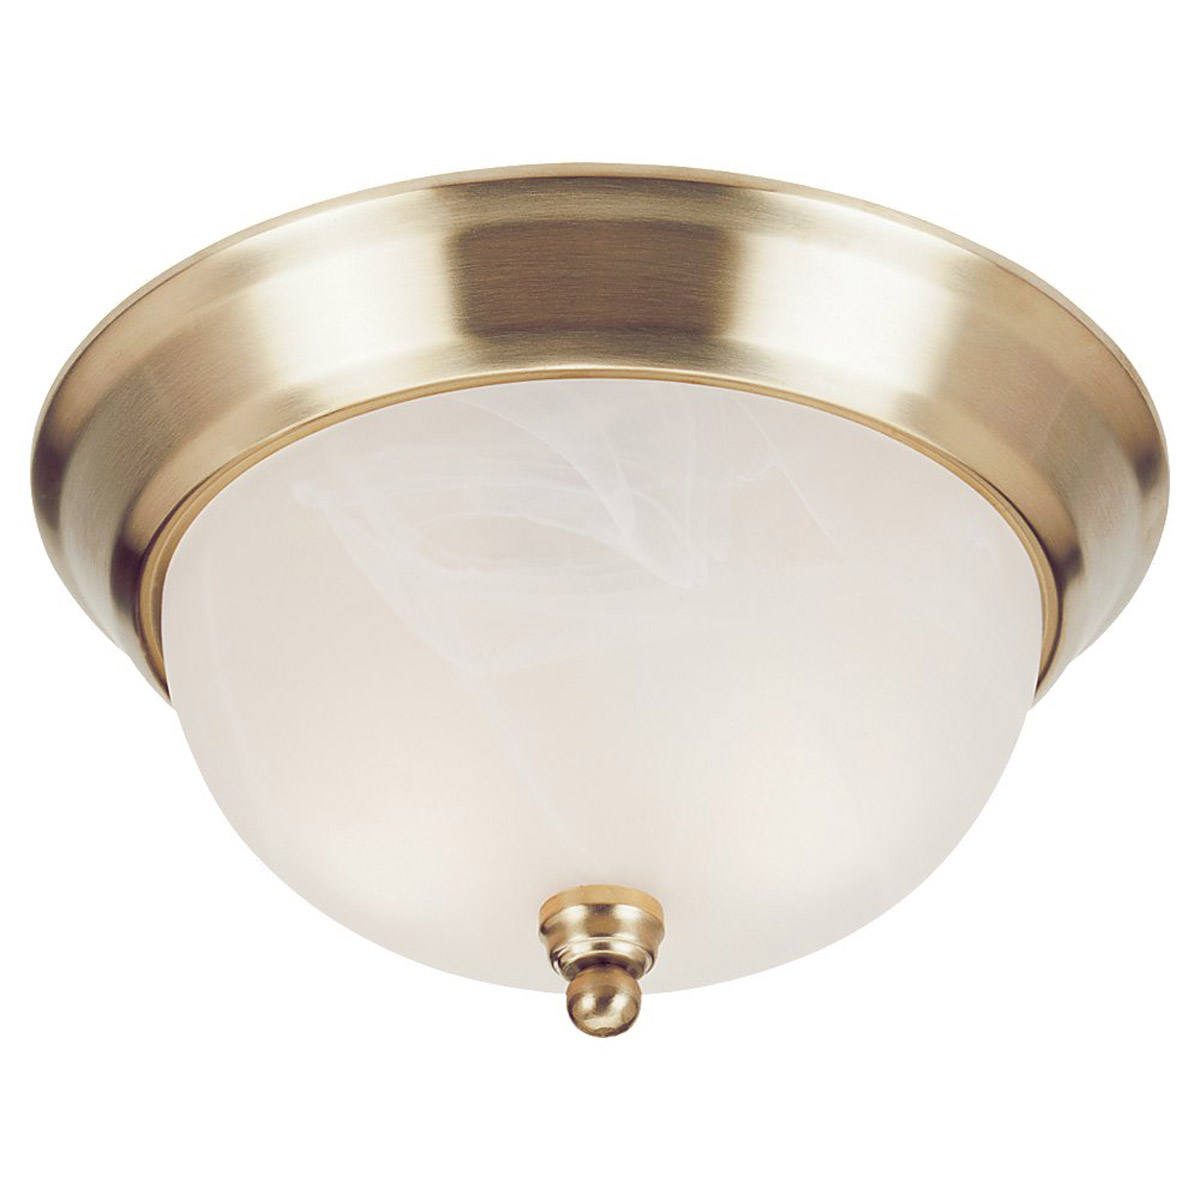 Sea Gull Lighting Landon 3 Light Fluorescent Flush Mount in Polished Brass 79242BLE-02